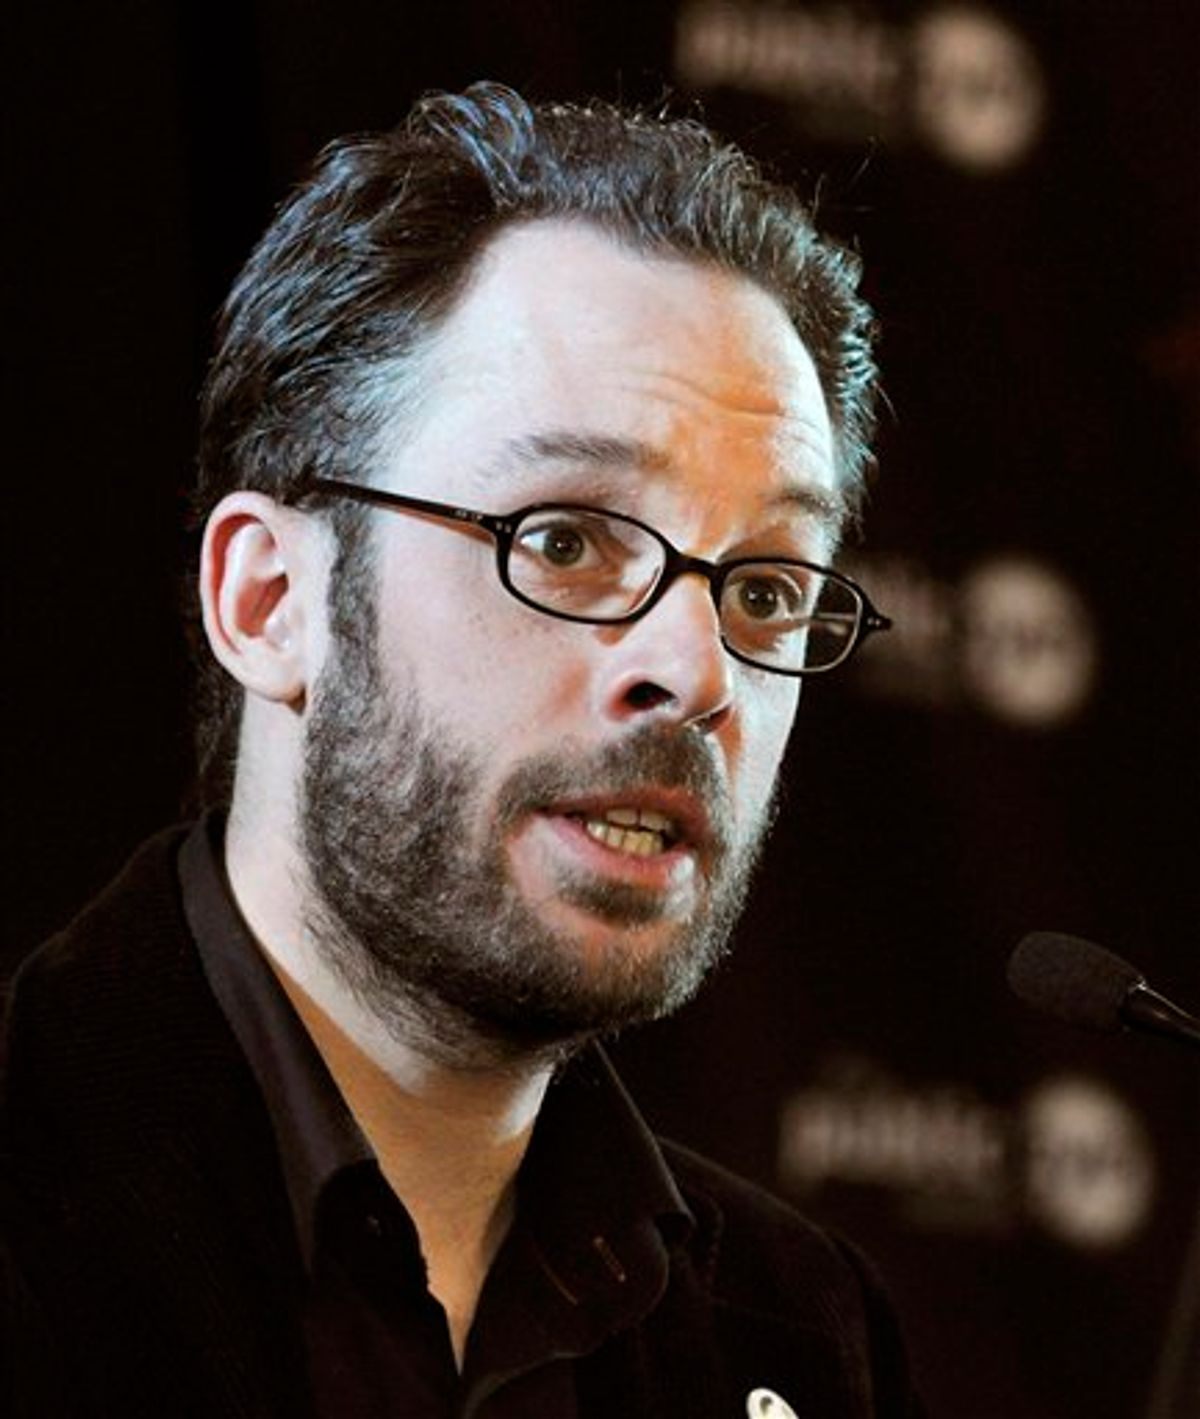 """FILE- In this file photo dated Friday Jan. 28, 2011, provided by Greenpeace, showing Daniel Domscheit-Berg during a news conference in Davos, Switzerland, on Friday, Jan. 28, 2011.  Domscheit-Berg is about to publish a book it is announced Monday Feb. 7, 2011, giving his insider account about secret spilling website WikiLeaks, entitled """"Inside WikiLeaks: My Time with Julian Assange at the World's Most Dangerous Website"""".  Daniel Domscheit-Berg is the former spokesman for WikiLeaks, but left the site dramatically in September 2010 because of a differences of opinion with founder Julian Assange. (AP Photo/Greenpeace, Markus Forte, file)  NO SALES, MANDATORY CREDIT, EDITORIAL USE ONLY (AP)"""